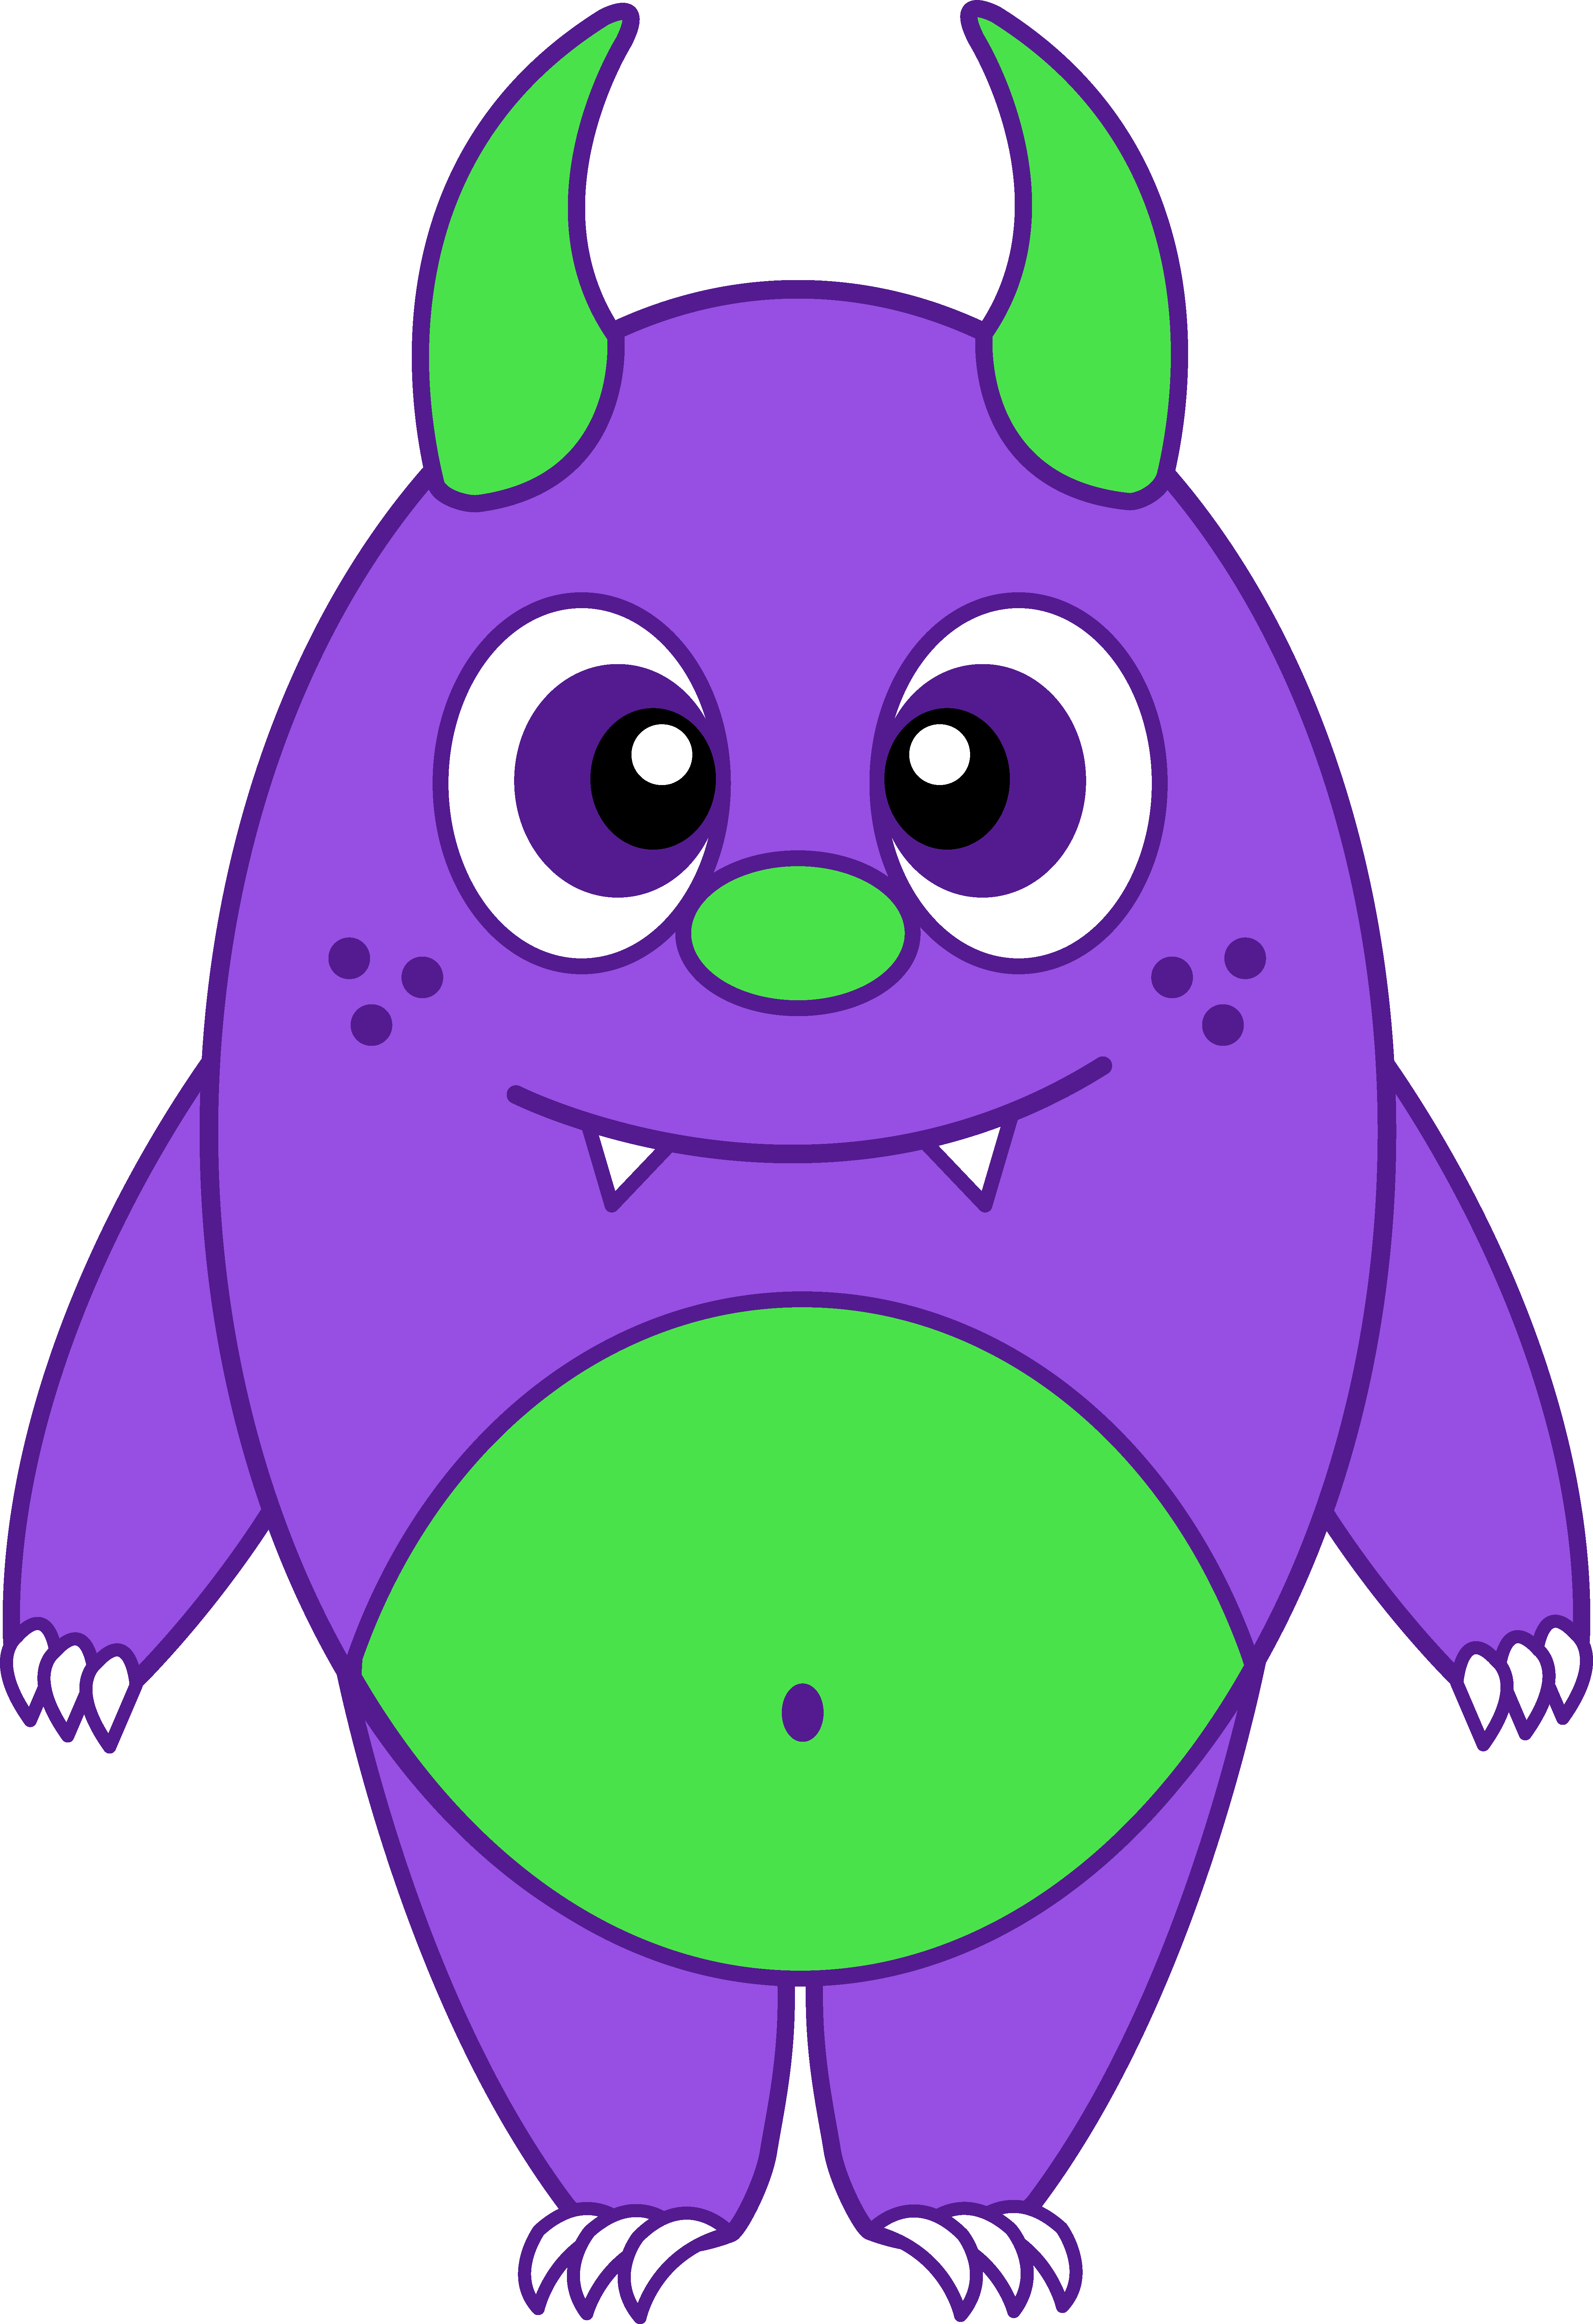 Snake clipart monster. Funny purple cliparts zone